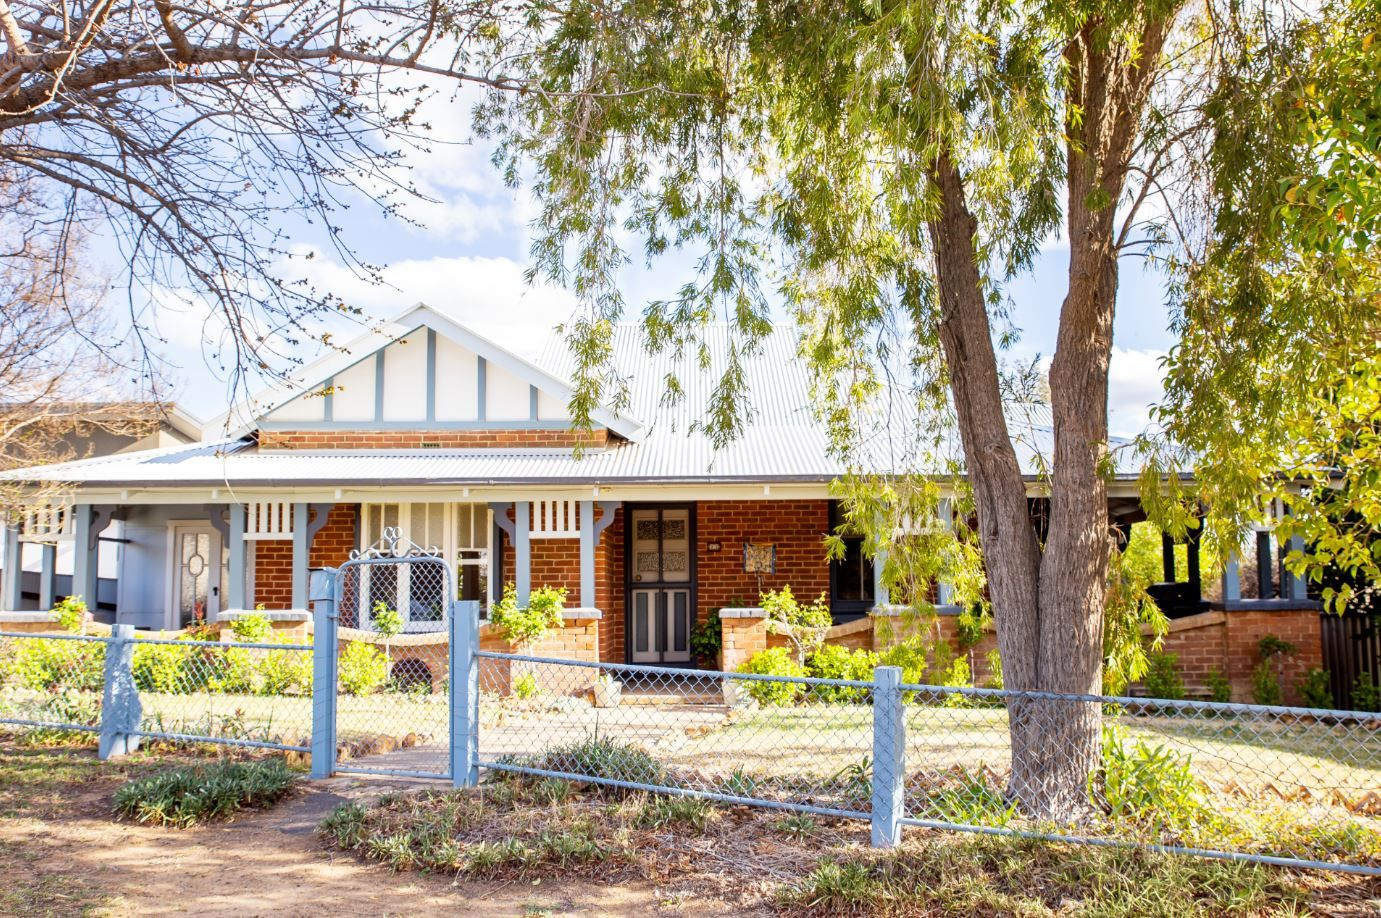 22 Suttor Street, Canowindra NSW 2804, Image 0